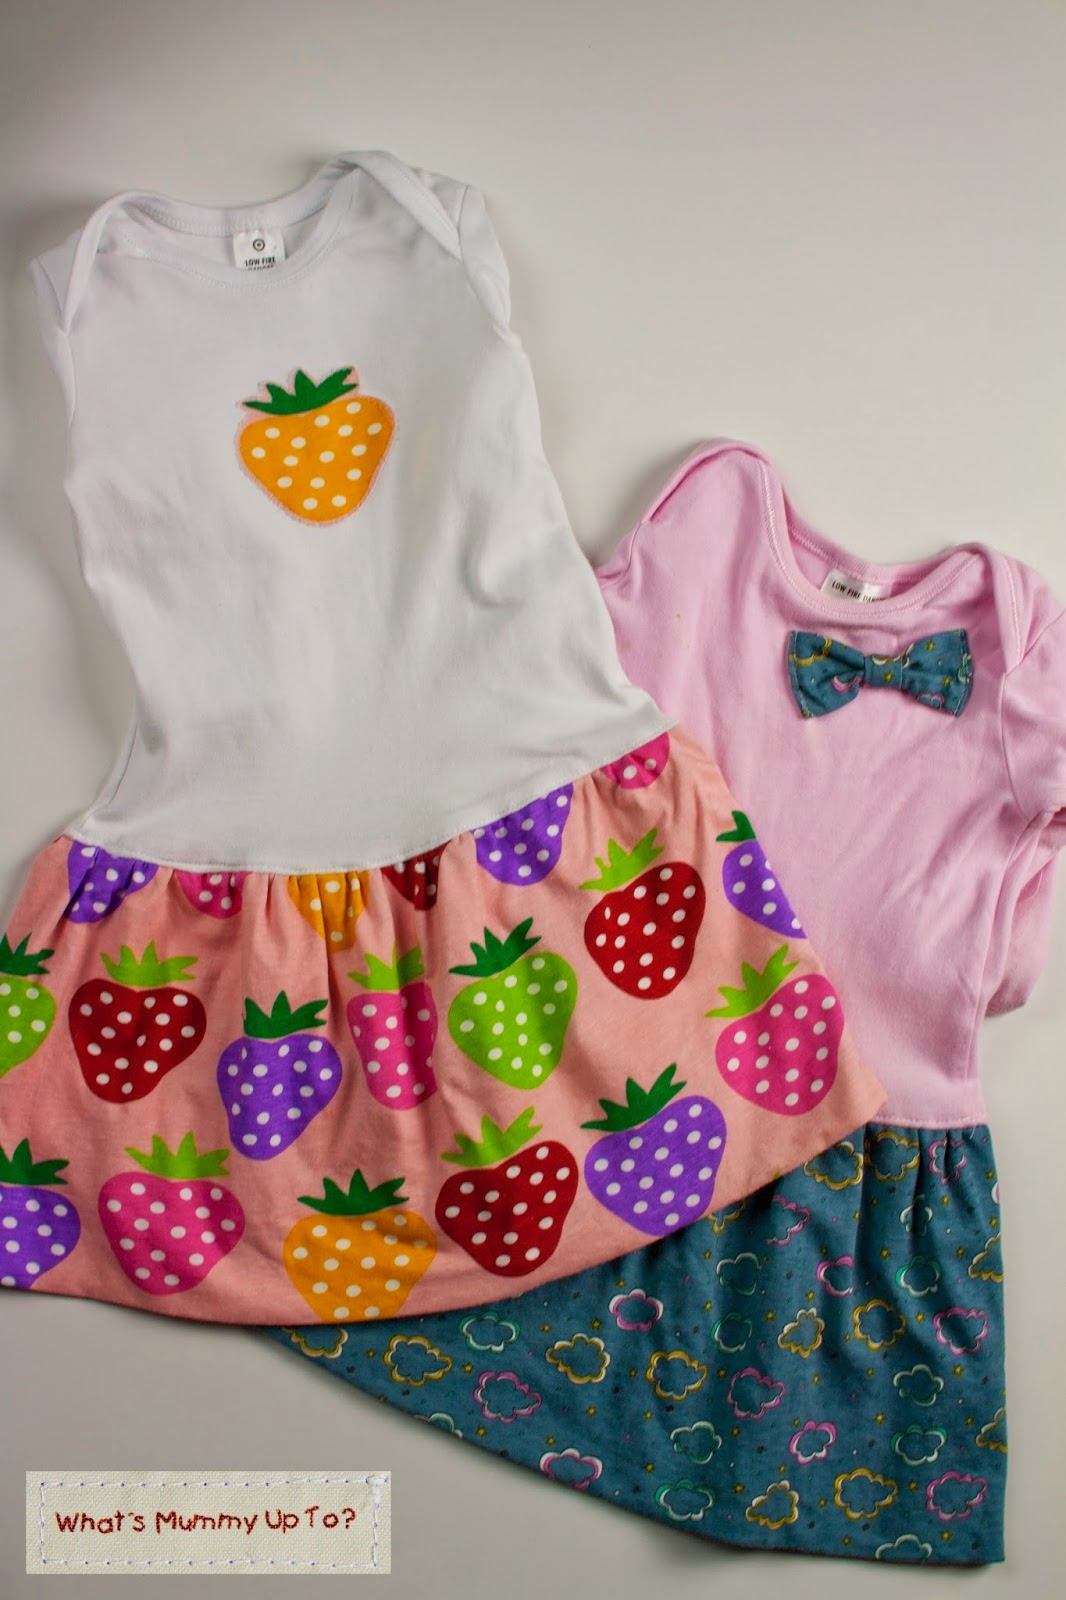 http://whatsmummyupto.blogspot.com.au/2014/08/waste-not-want-not-bubble-dresses-from.html